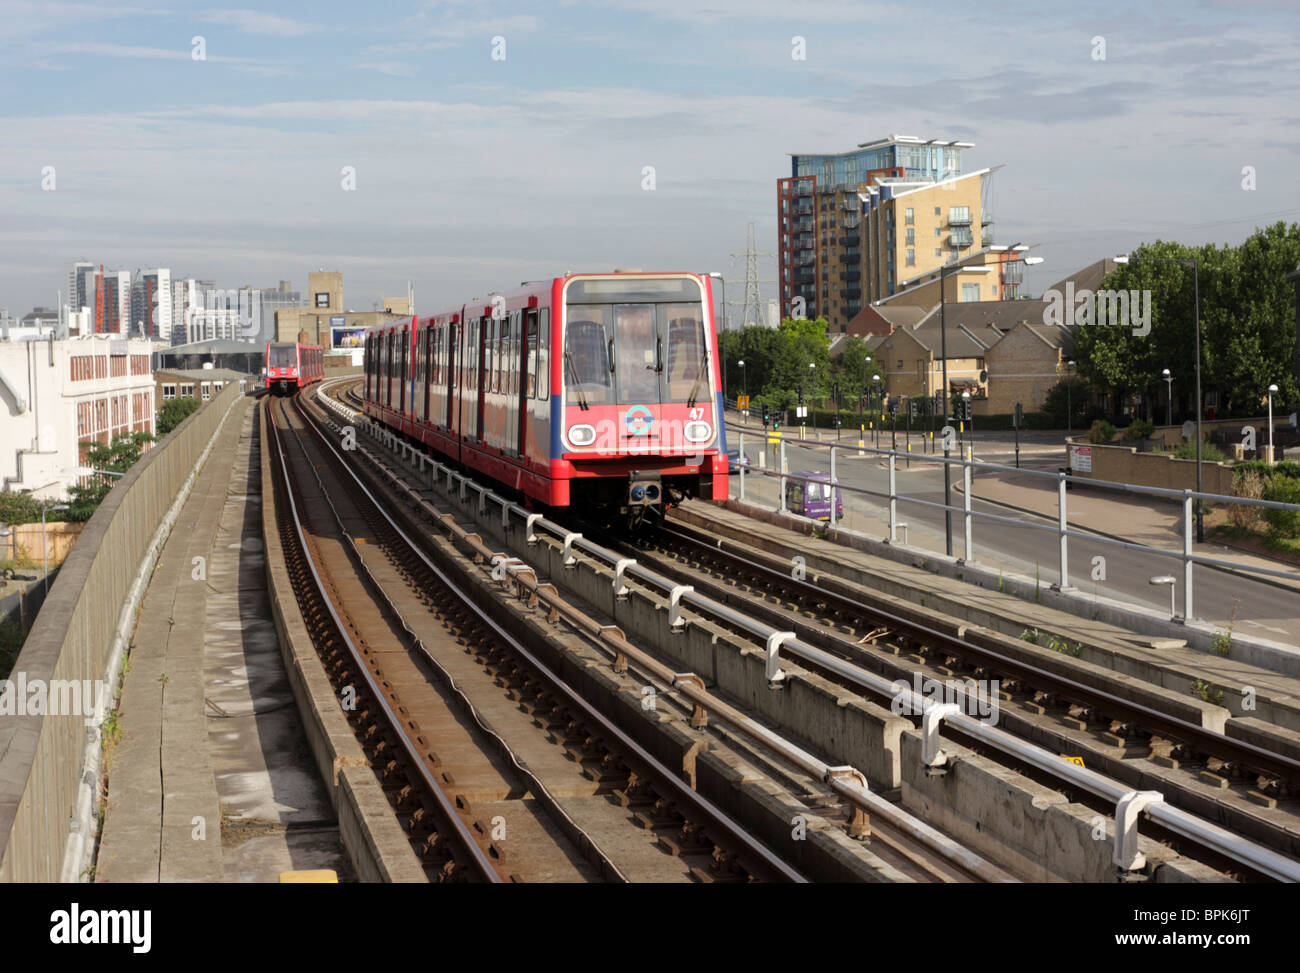 One DLR train leaving and one arriving at the West Silvertown Station in east London`s docklands. - Stock Image